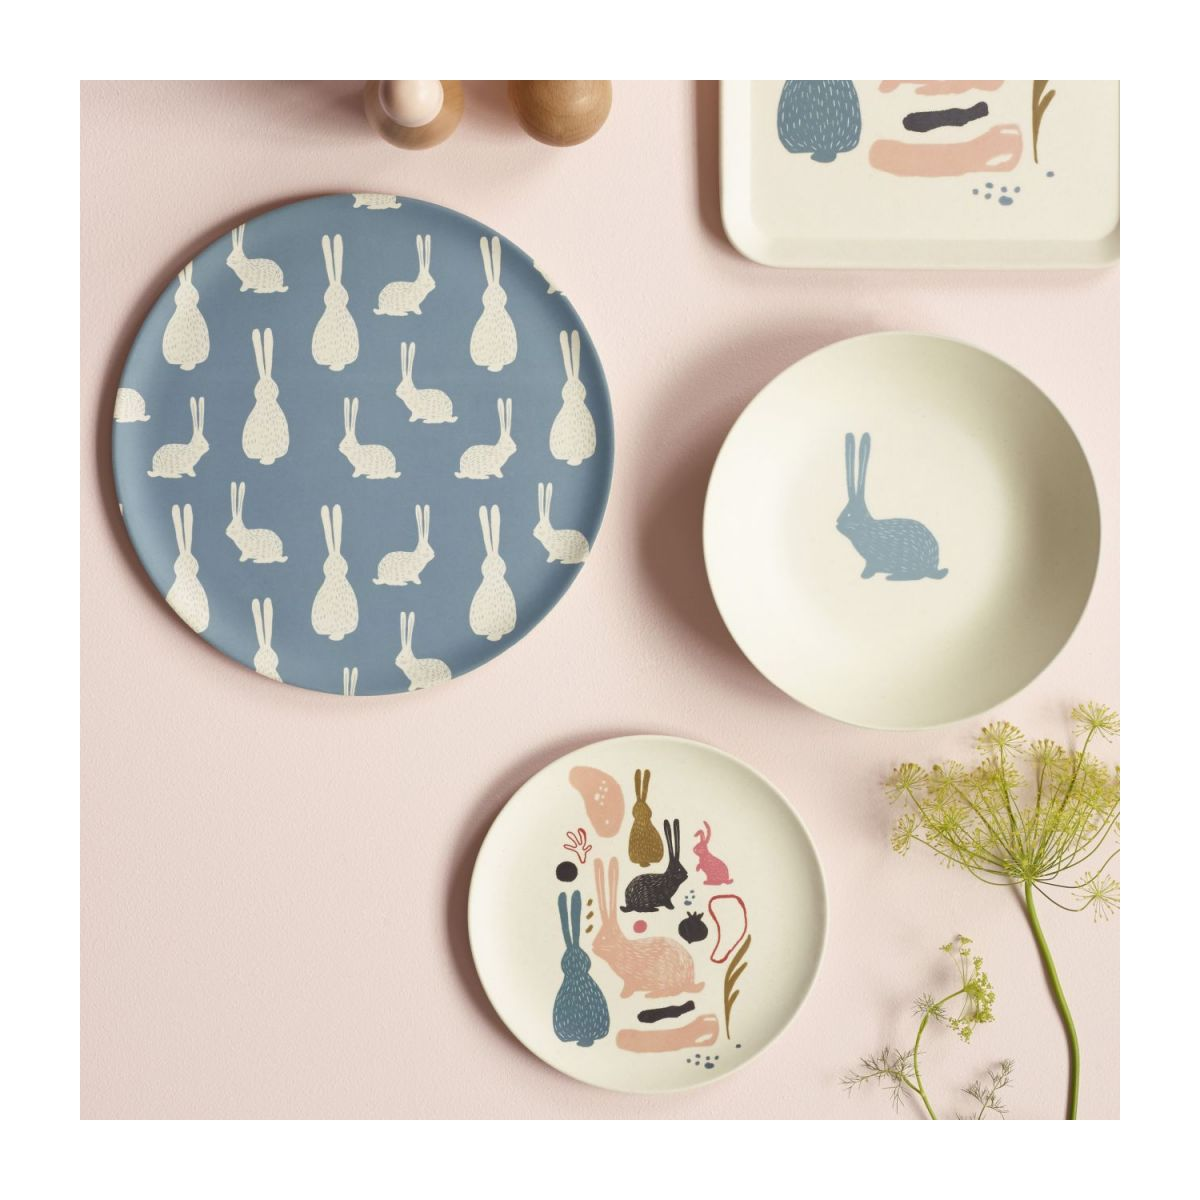 Dessert plate with bunny patterns n°4